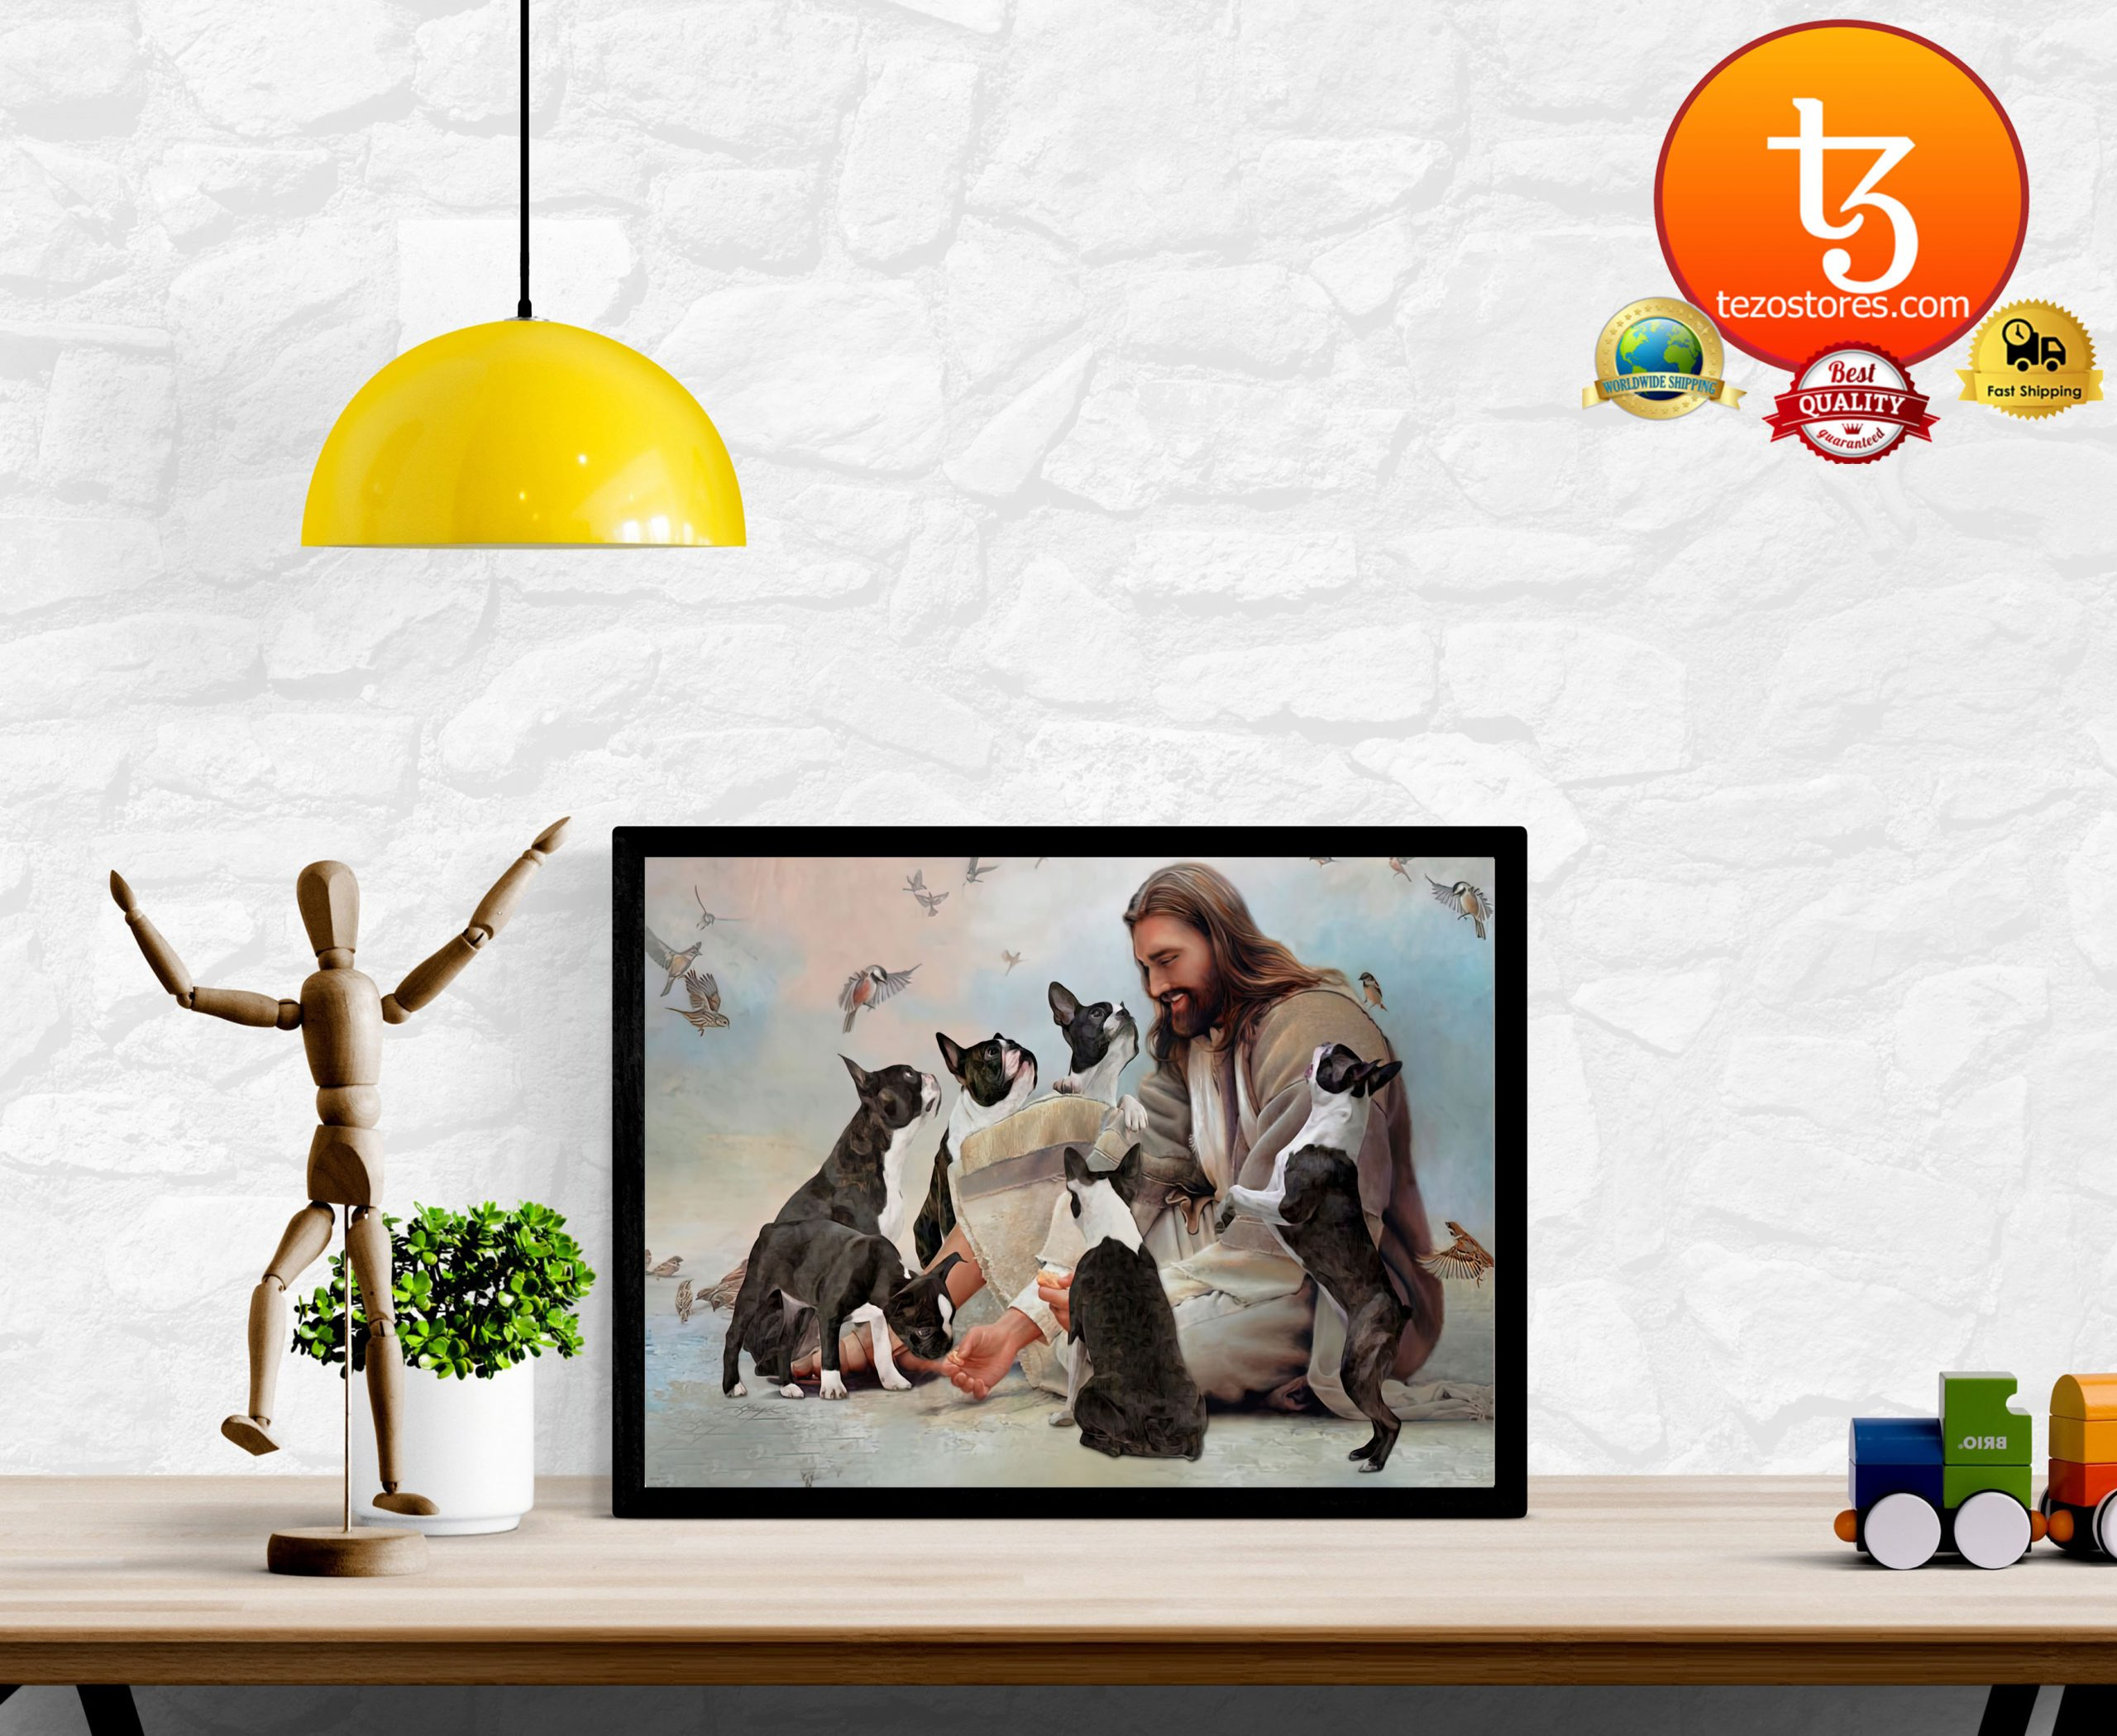 God surrounded by Boston Terrier angels Poster2